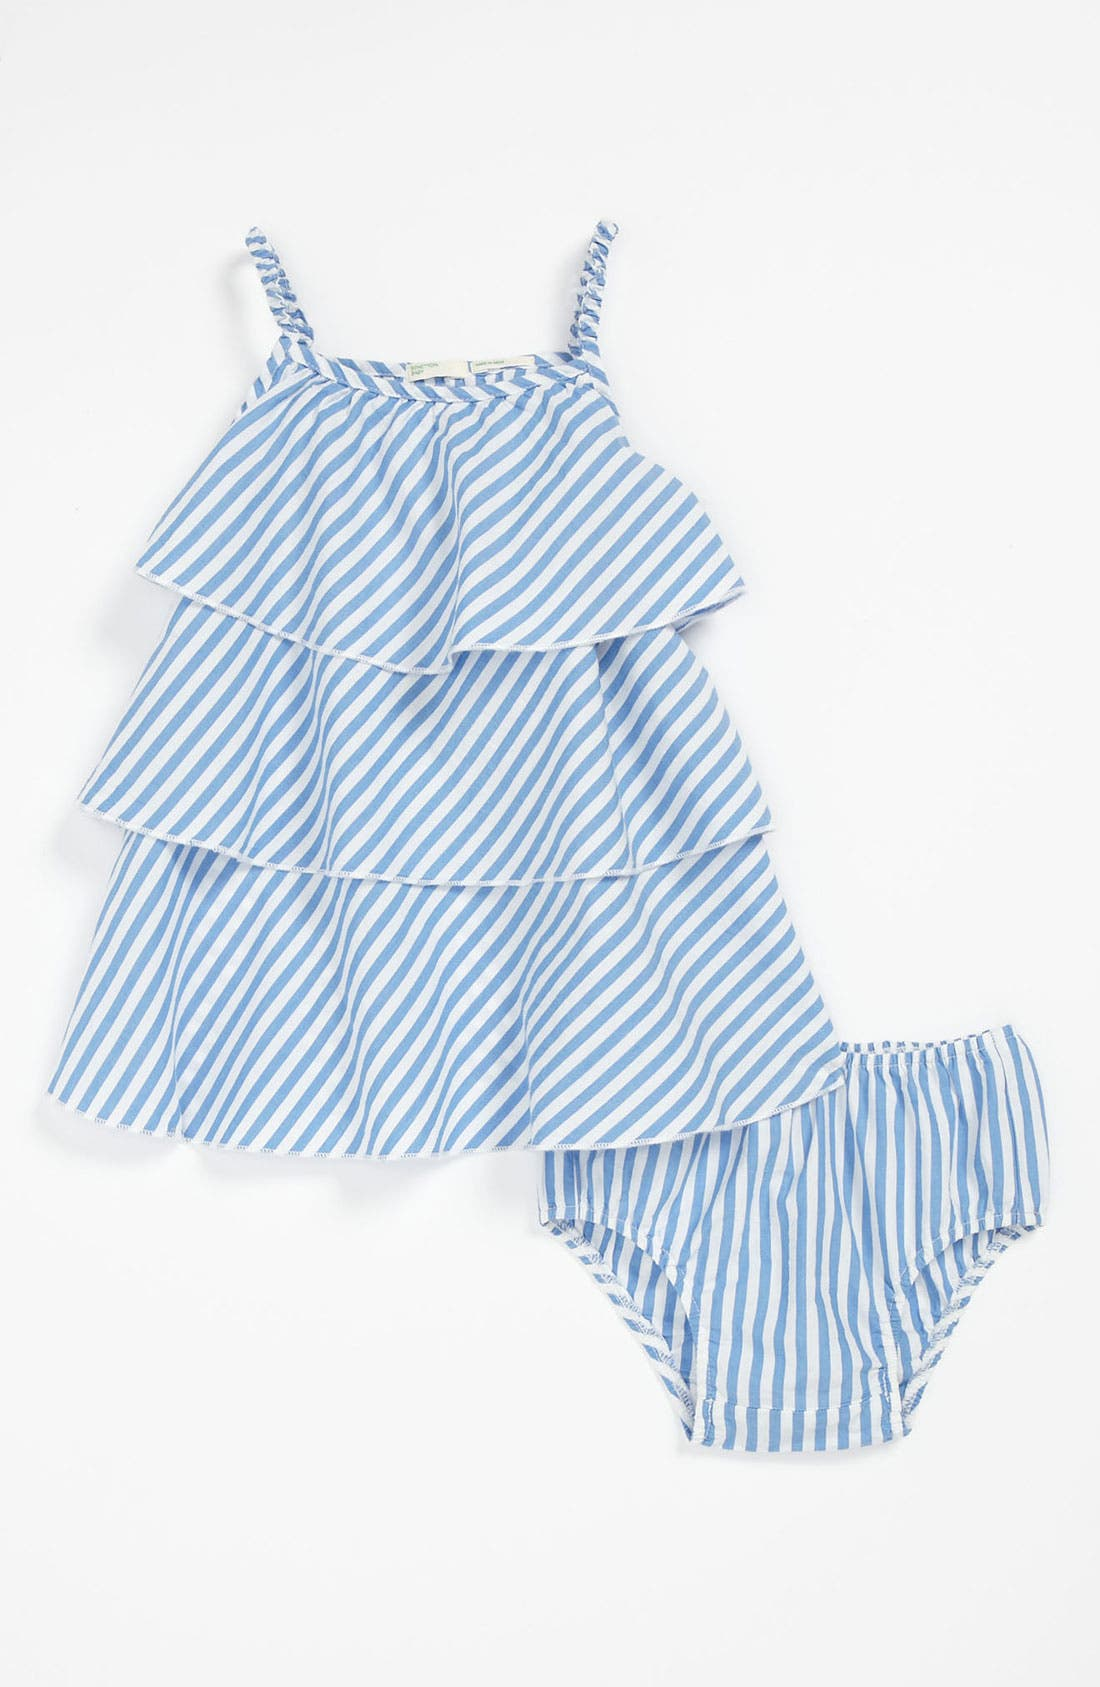 Main Image - United Colors of Benetton Kids Stripe Dress & Bloomers (Baby)